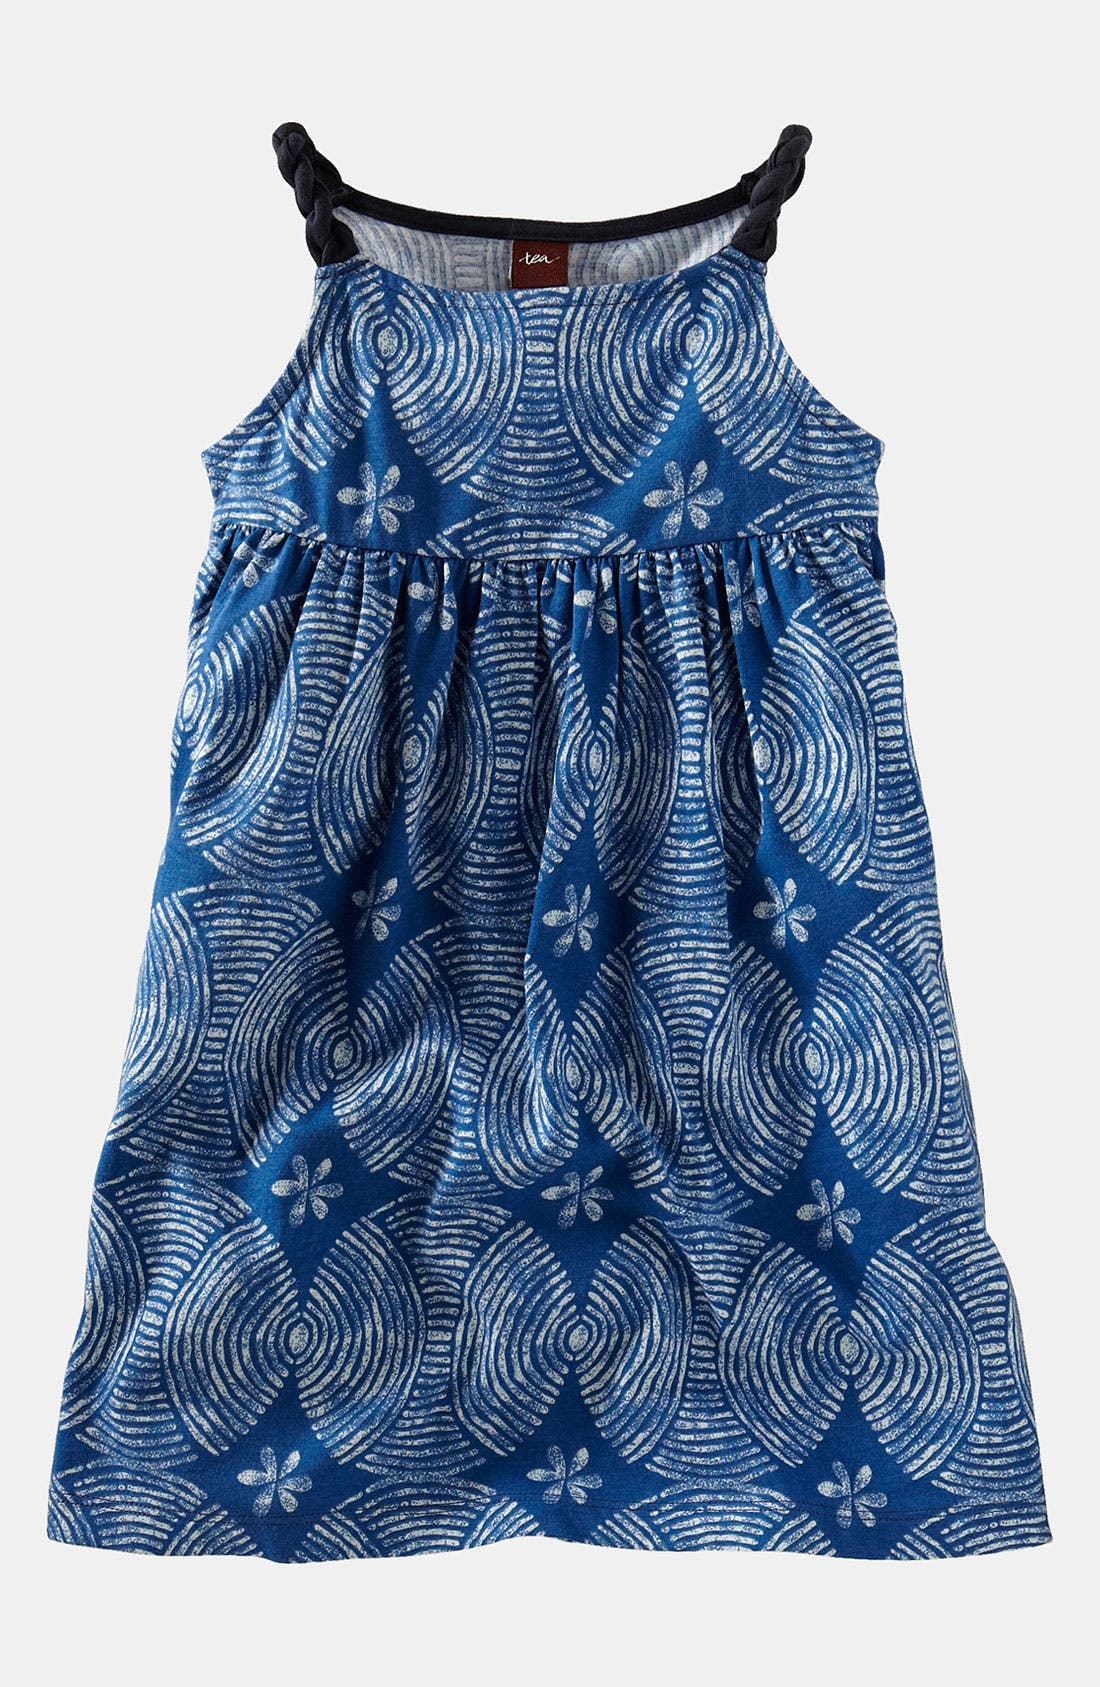 Alternate Image 1 Selected - Tea Collection 'Sand Circle' Dress (Toddler, Little Girls & Big Girls)